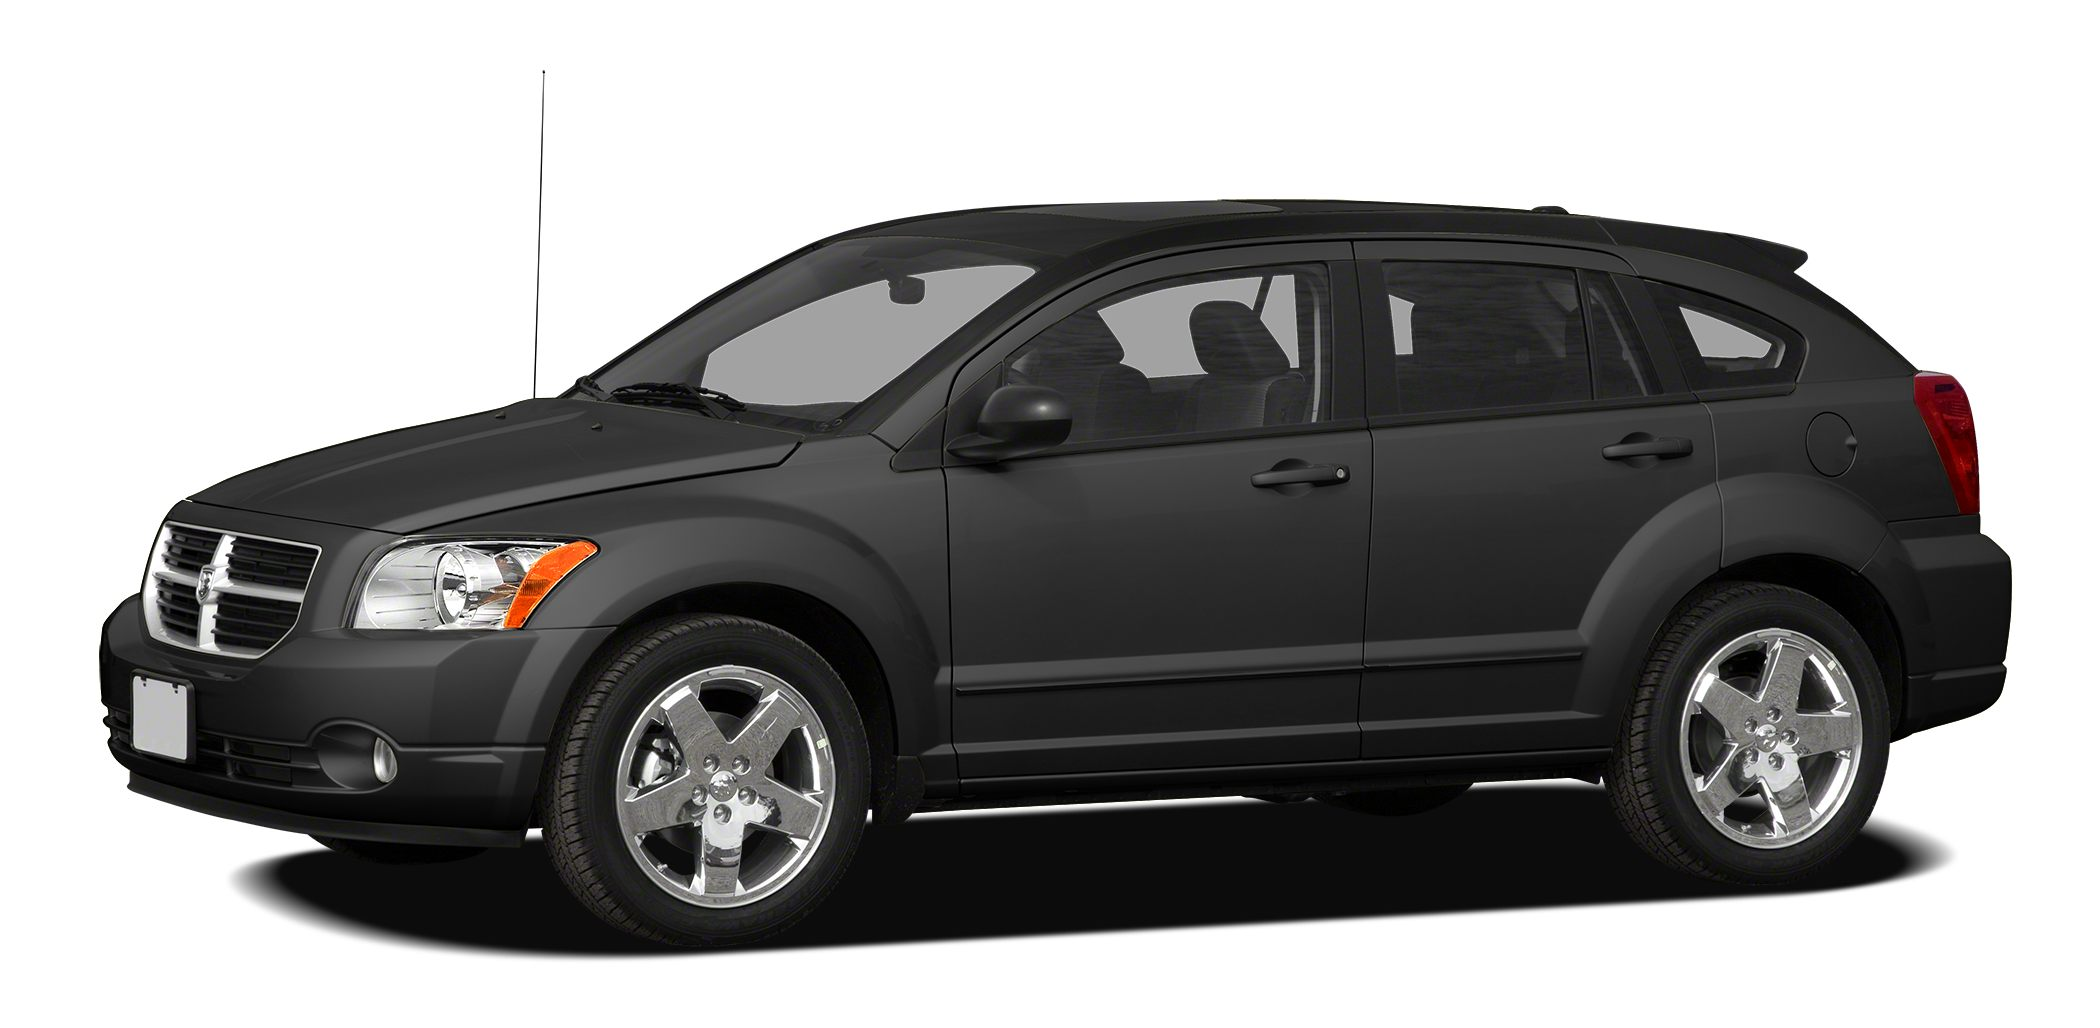 2011 Dodge Caliber Mainstreet Sharp Looking 1 Owner Local Off Lease 2011 Caliber Mainstreet with